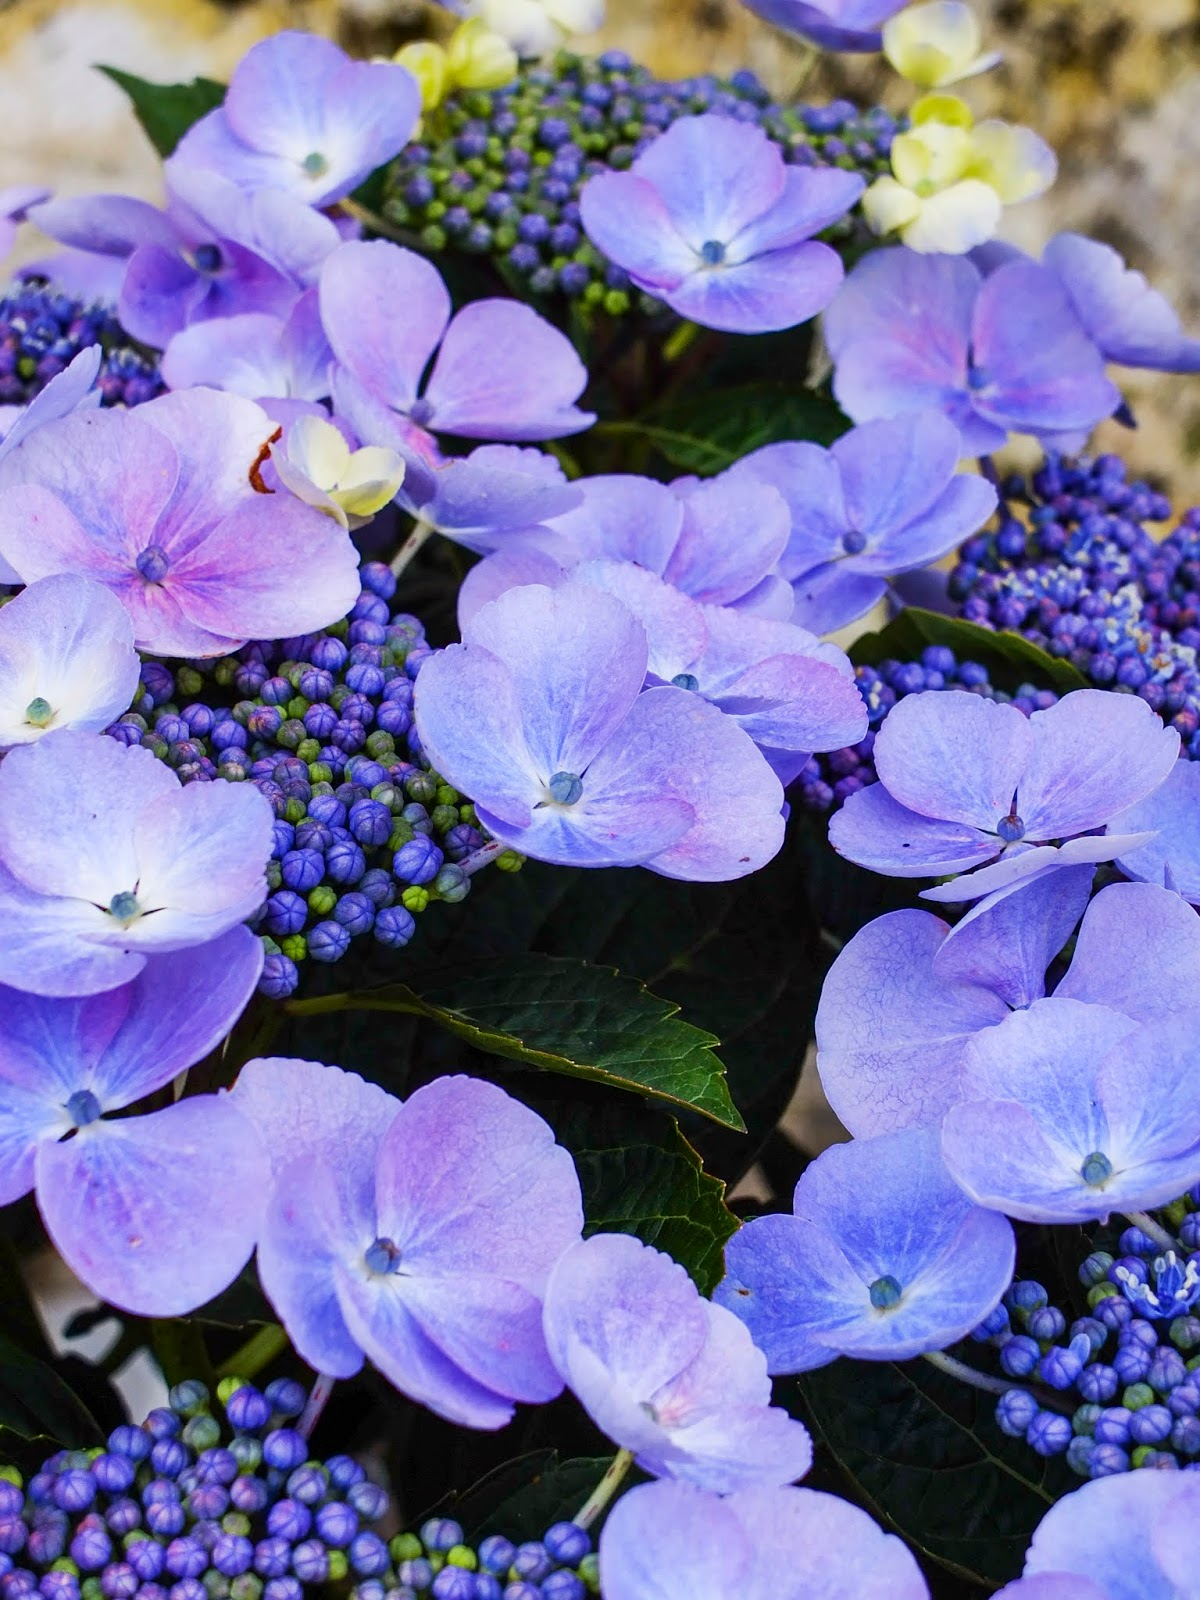 A close up of blue flowers from a Lacecap Hydrangea shrub.